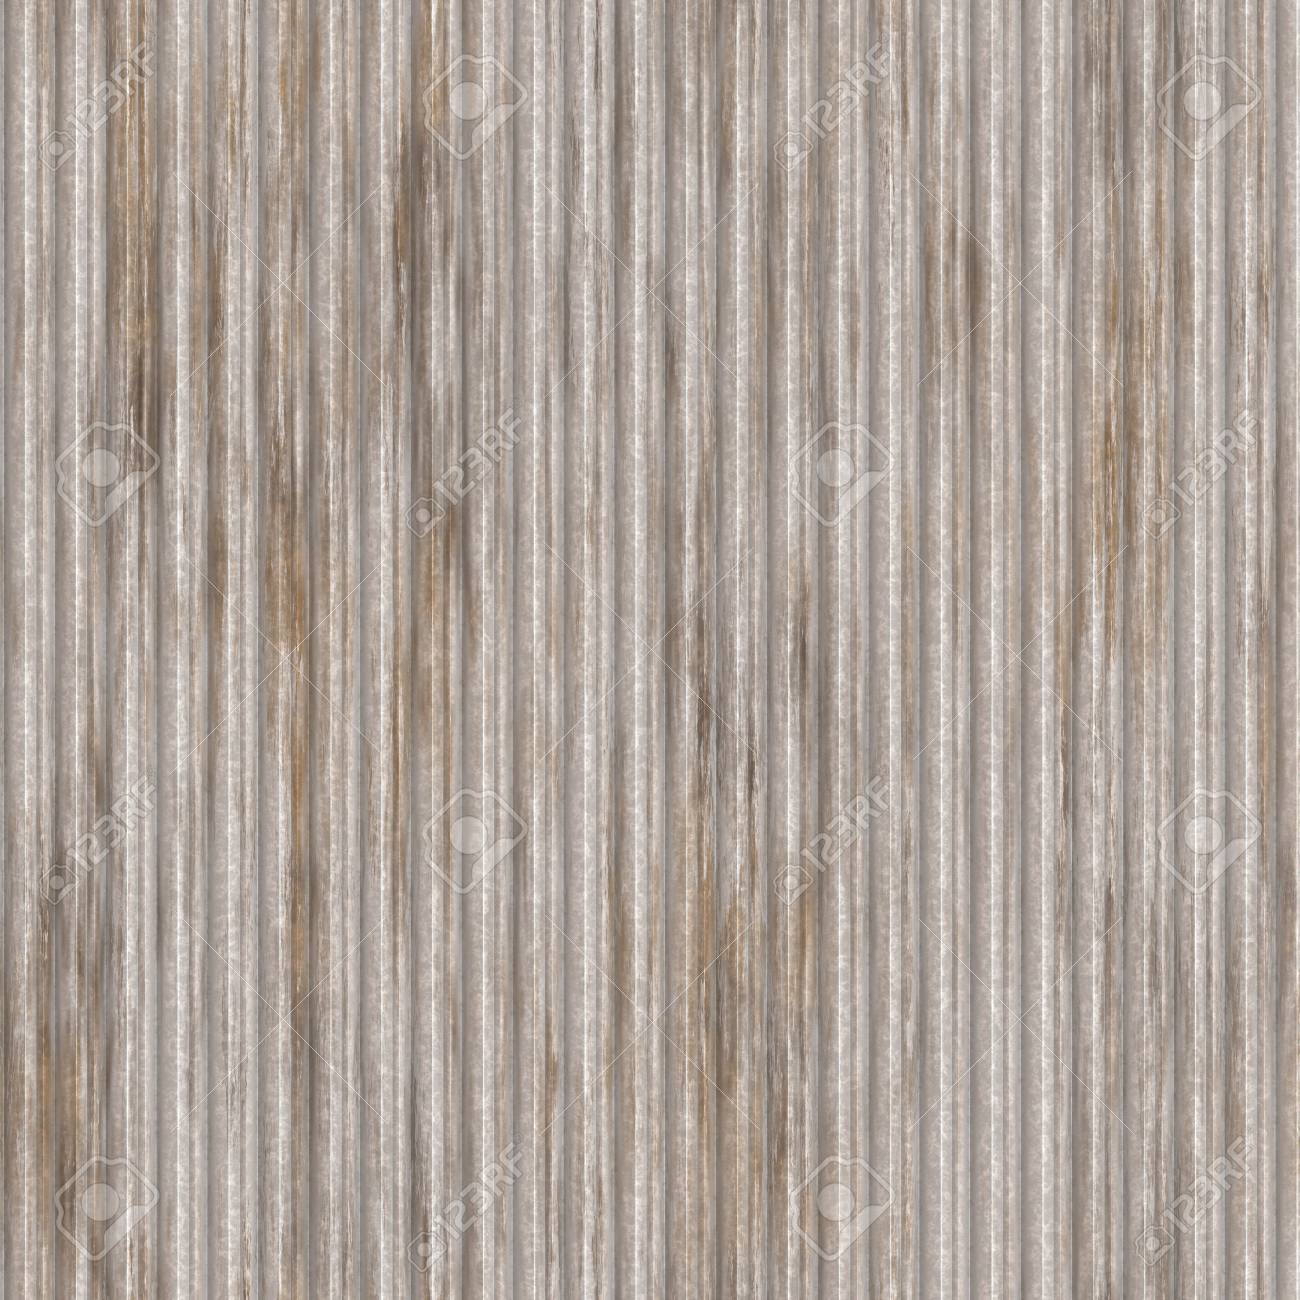 Corrugated metal ridged surface with corrosion seamless texture Stock Photo - 5907419